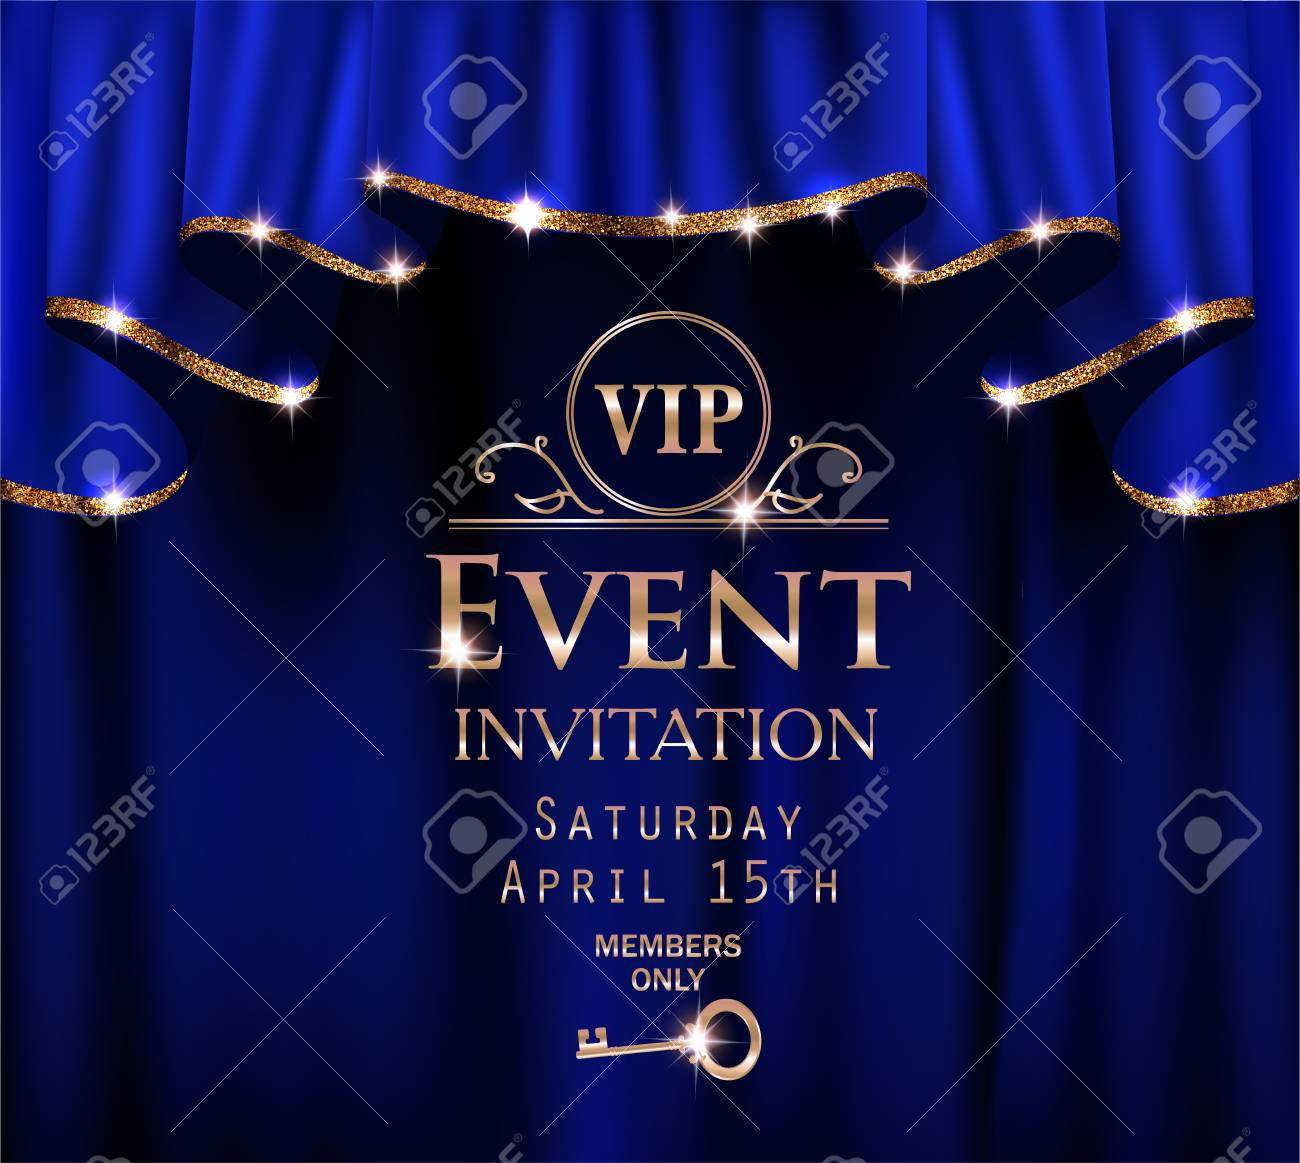 invitation card event